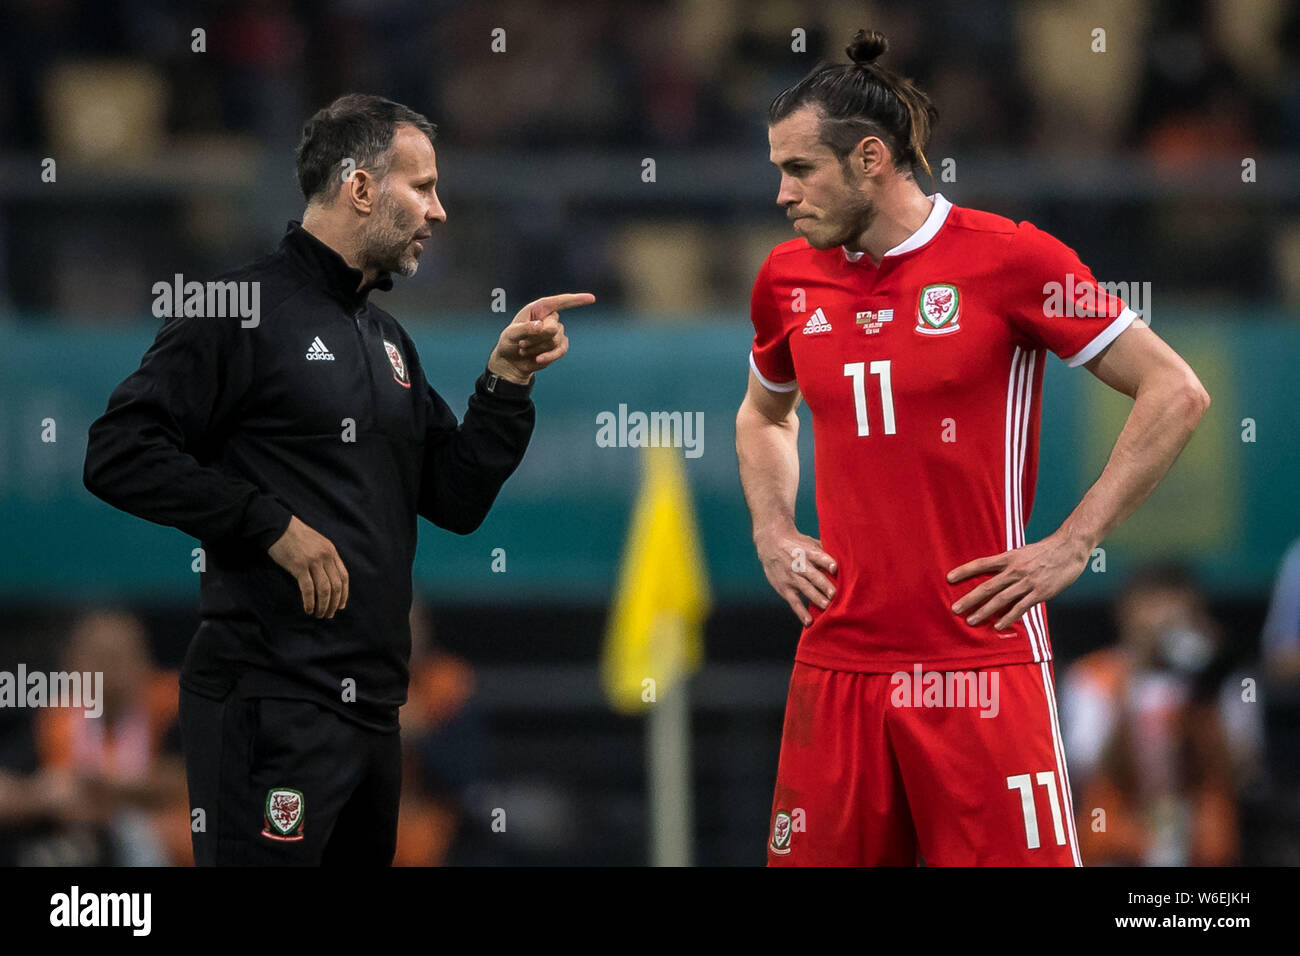 on sale d5842 a8e12 Head coach Ryan Giggs, left, of Wales national football team ...